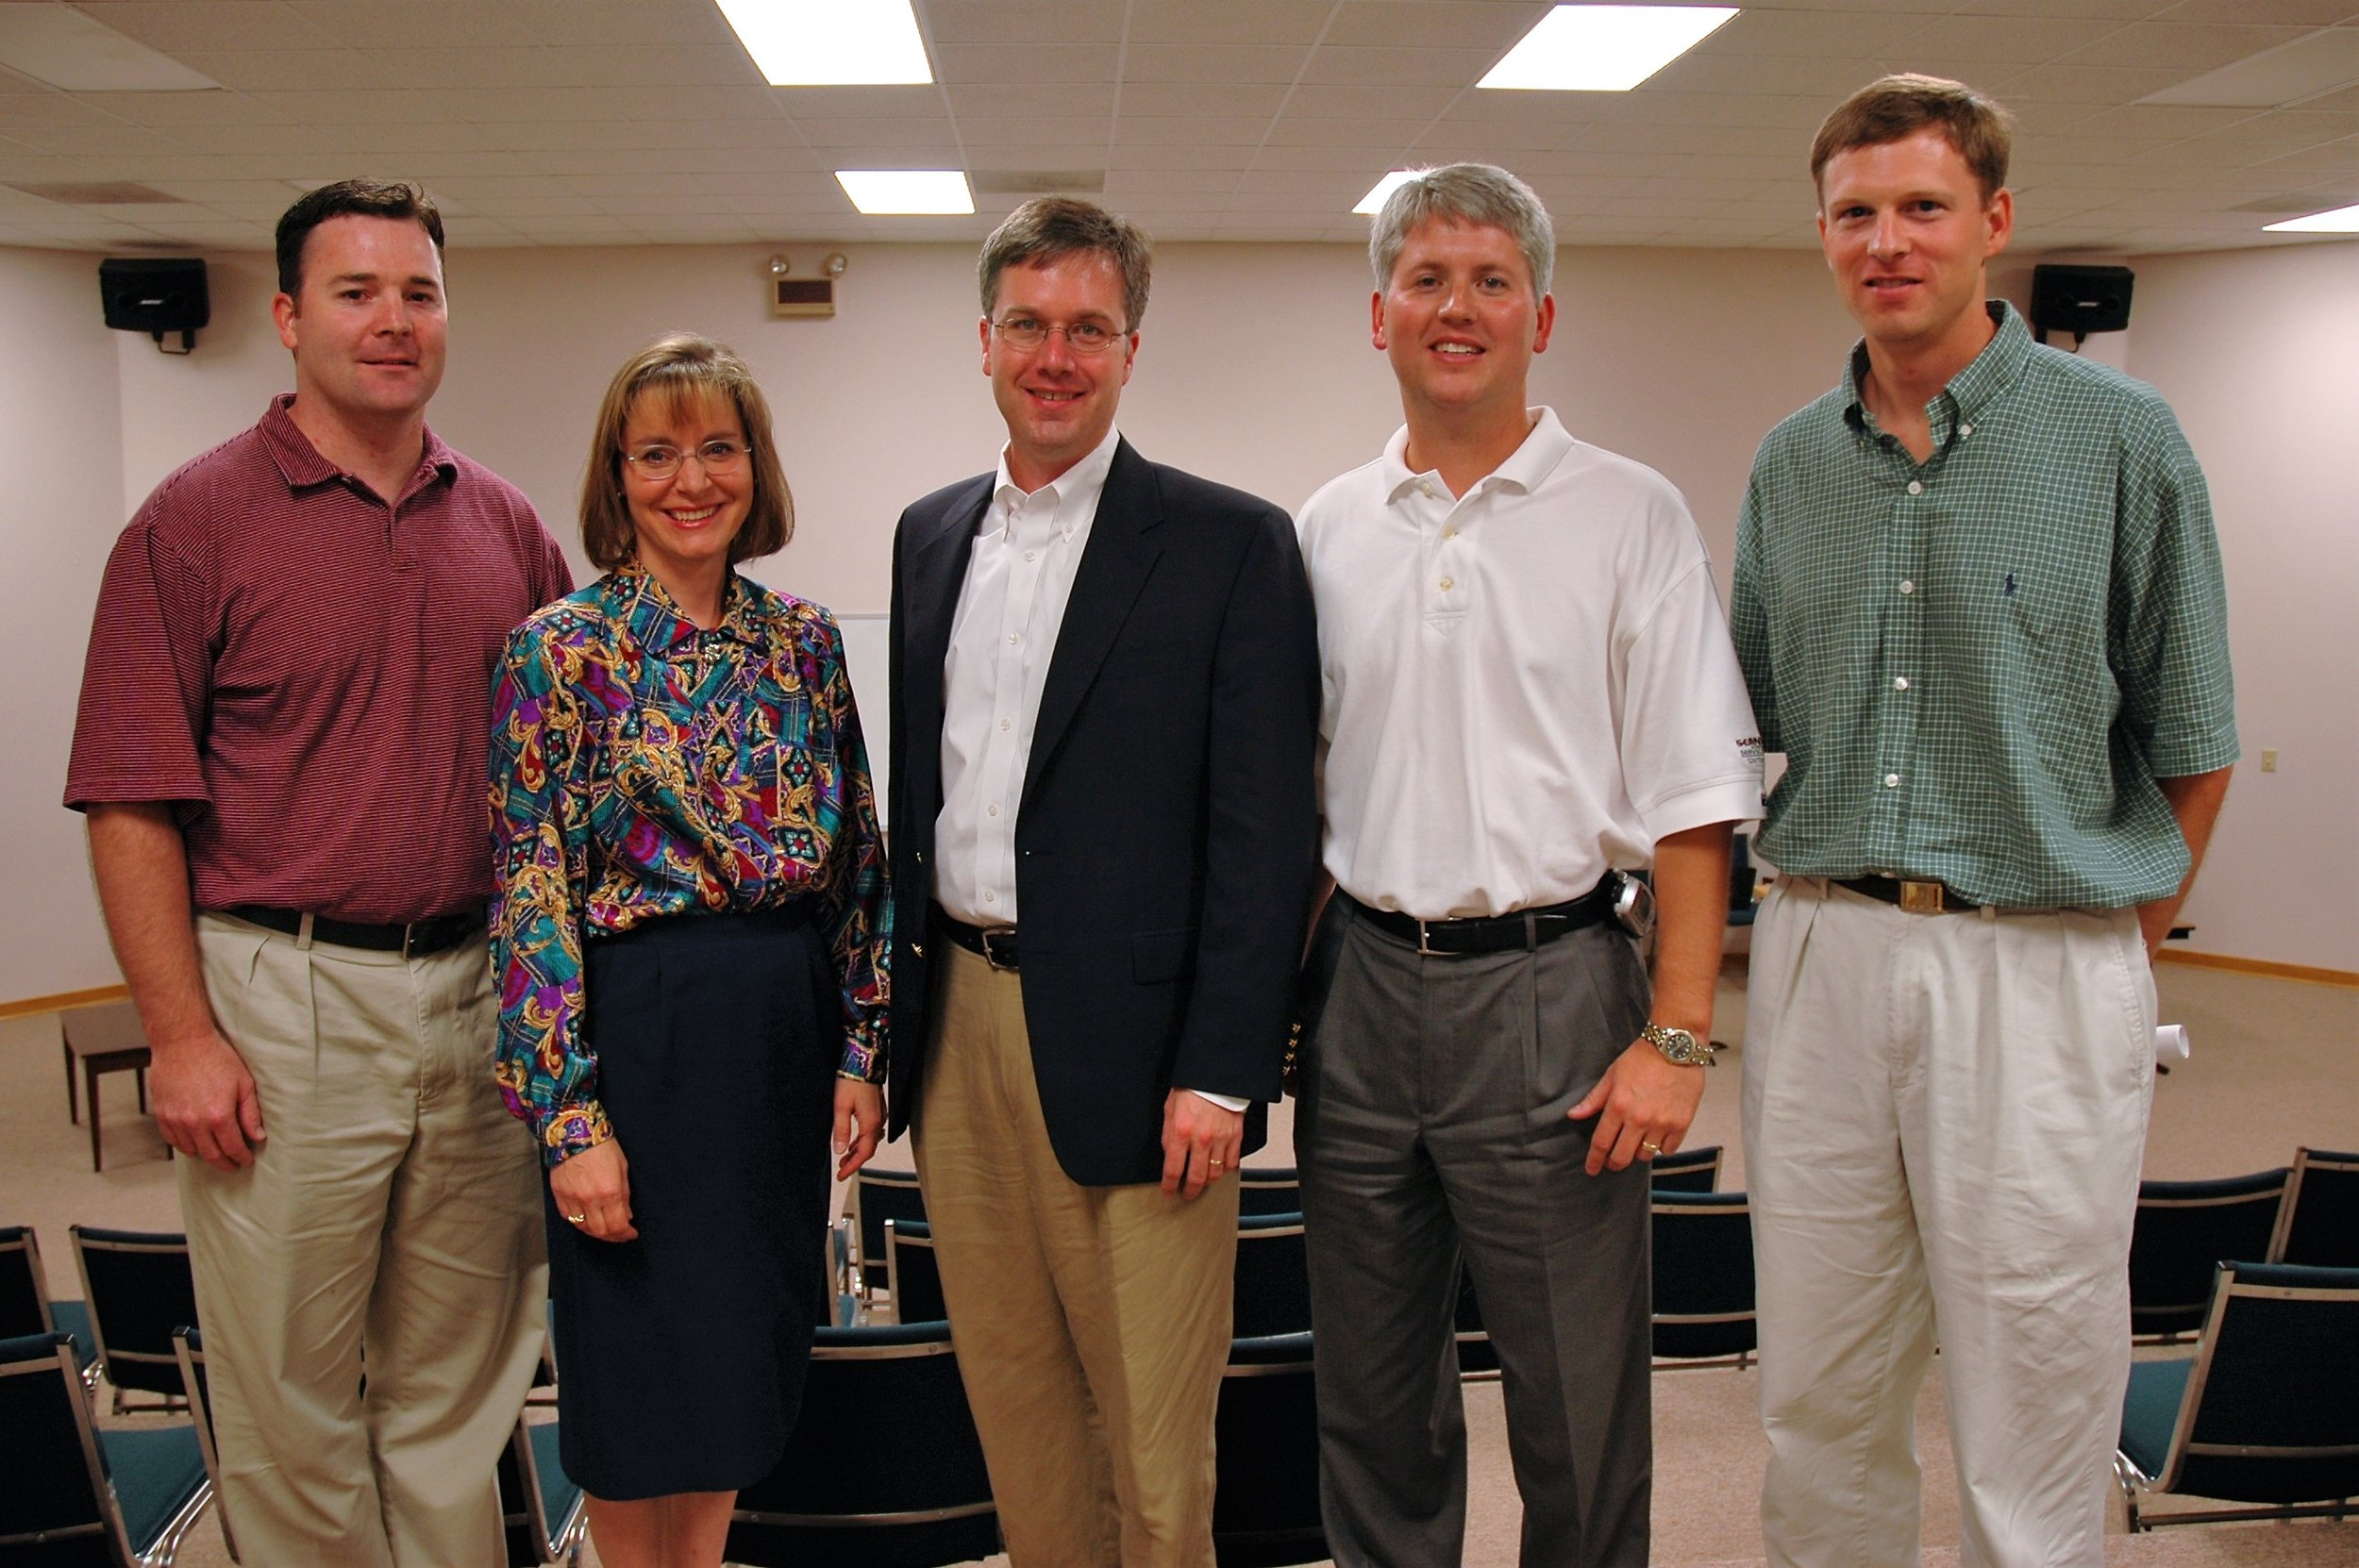 The newly-elected GCA Board - July 14, 2004